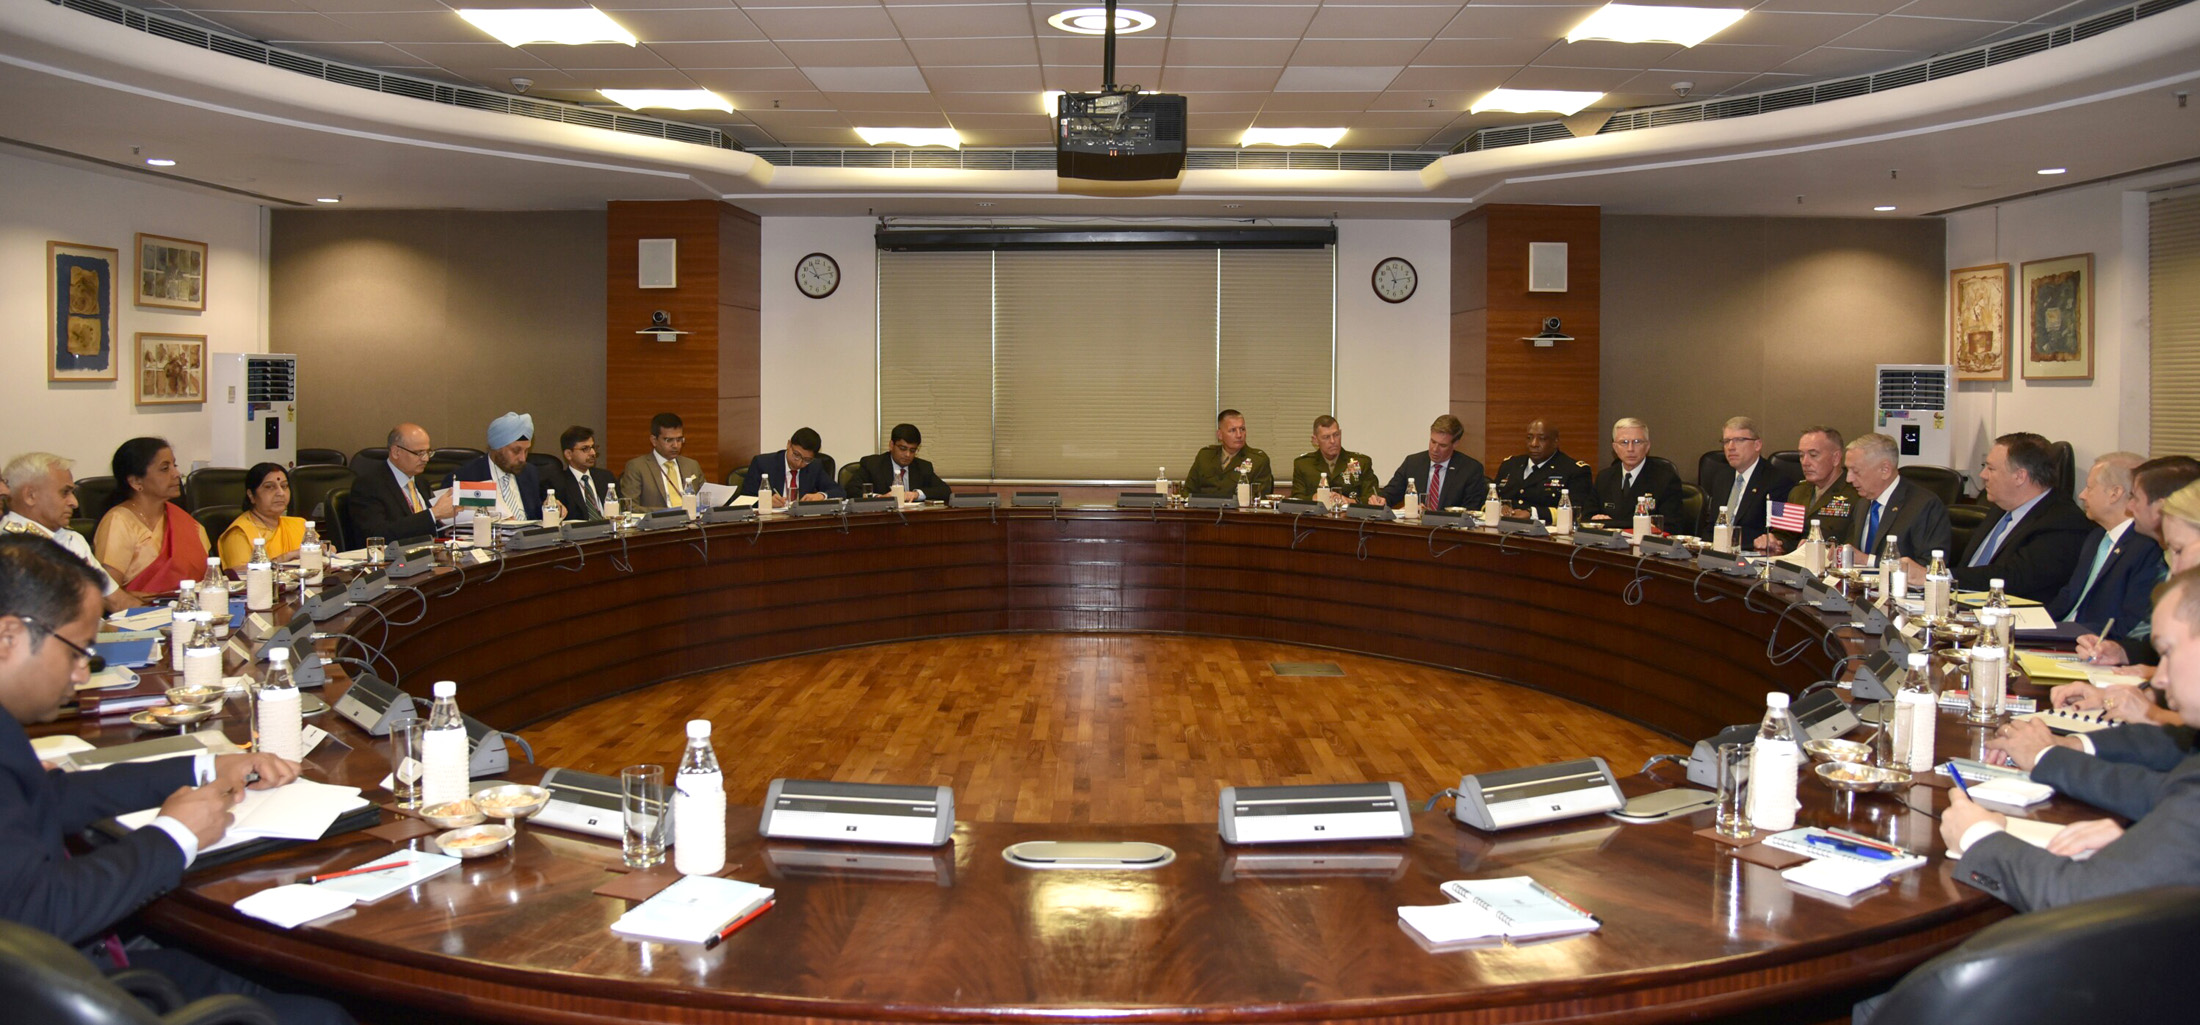 Indian Minister for Defence Nirmala Sitharaman, Minister for External Affairs Sushma Swaraj along with the US Secretary of Defence James Mattis and the US Secretary of State Michael R. Pompeo at the '2+2 Bilateral Dialogue' between the two countries, in New Delhi on September 06, 2018 (Photo courtesy: Ministry of Defence